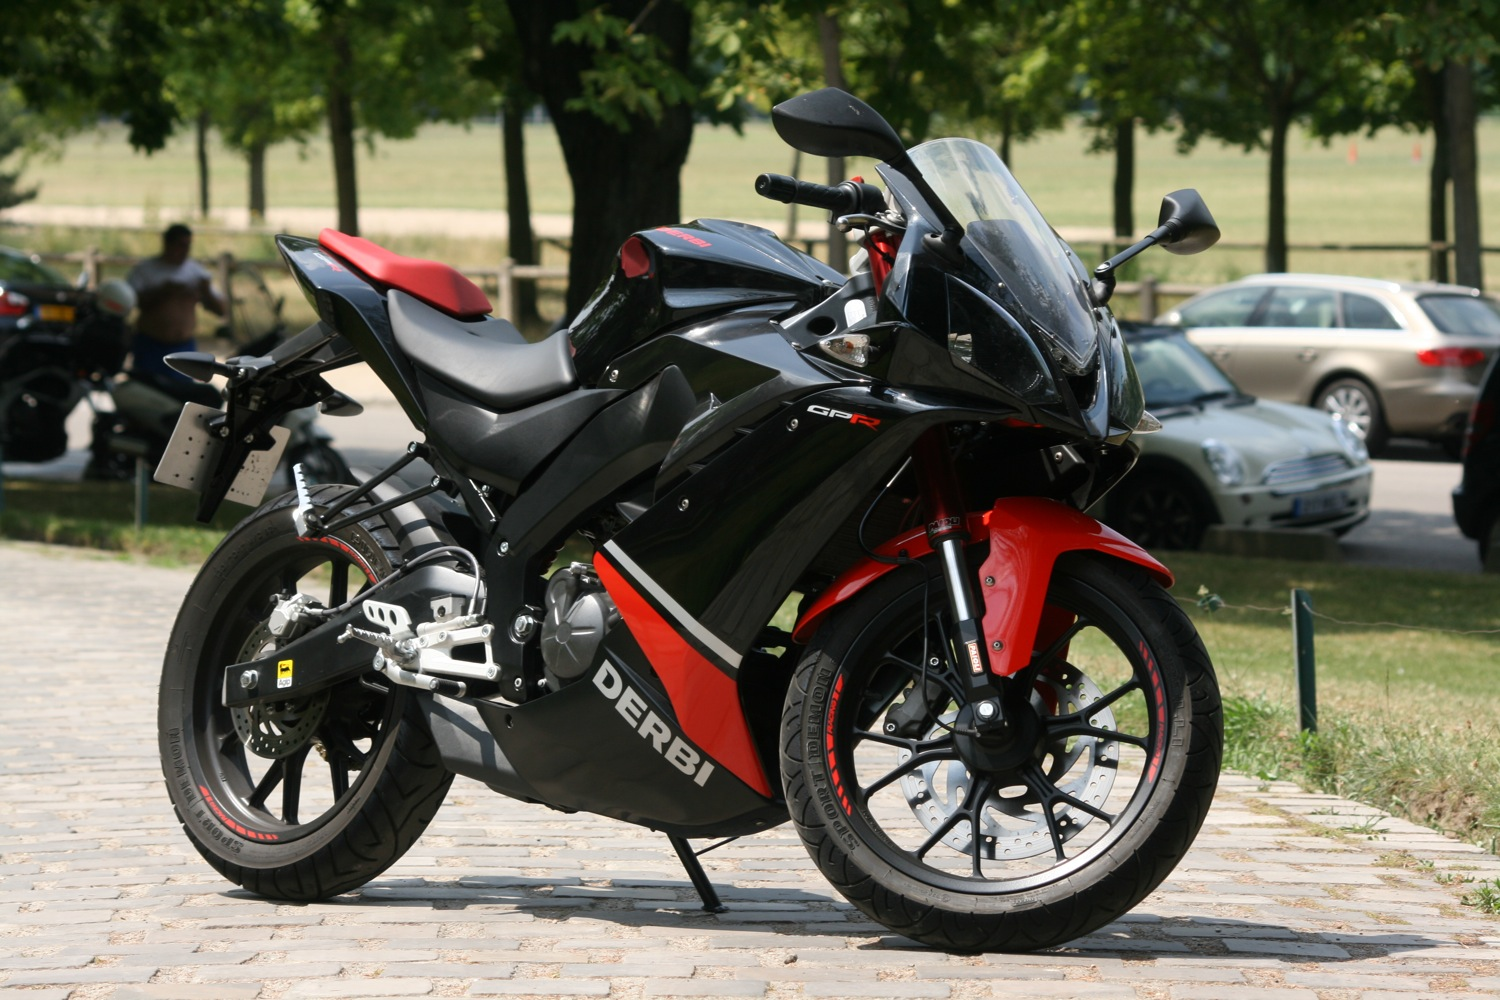 2011 derbi gpr 125 4t 4v pics specs and information. Black Bedroom Furniture Sets. Home Design Ideas